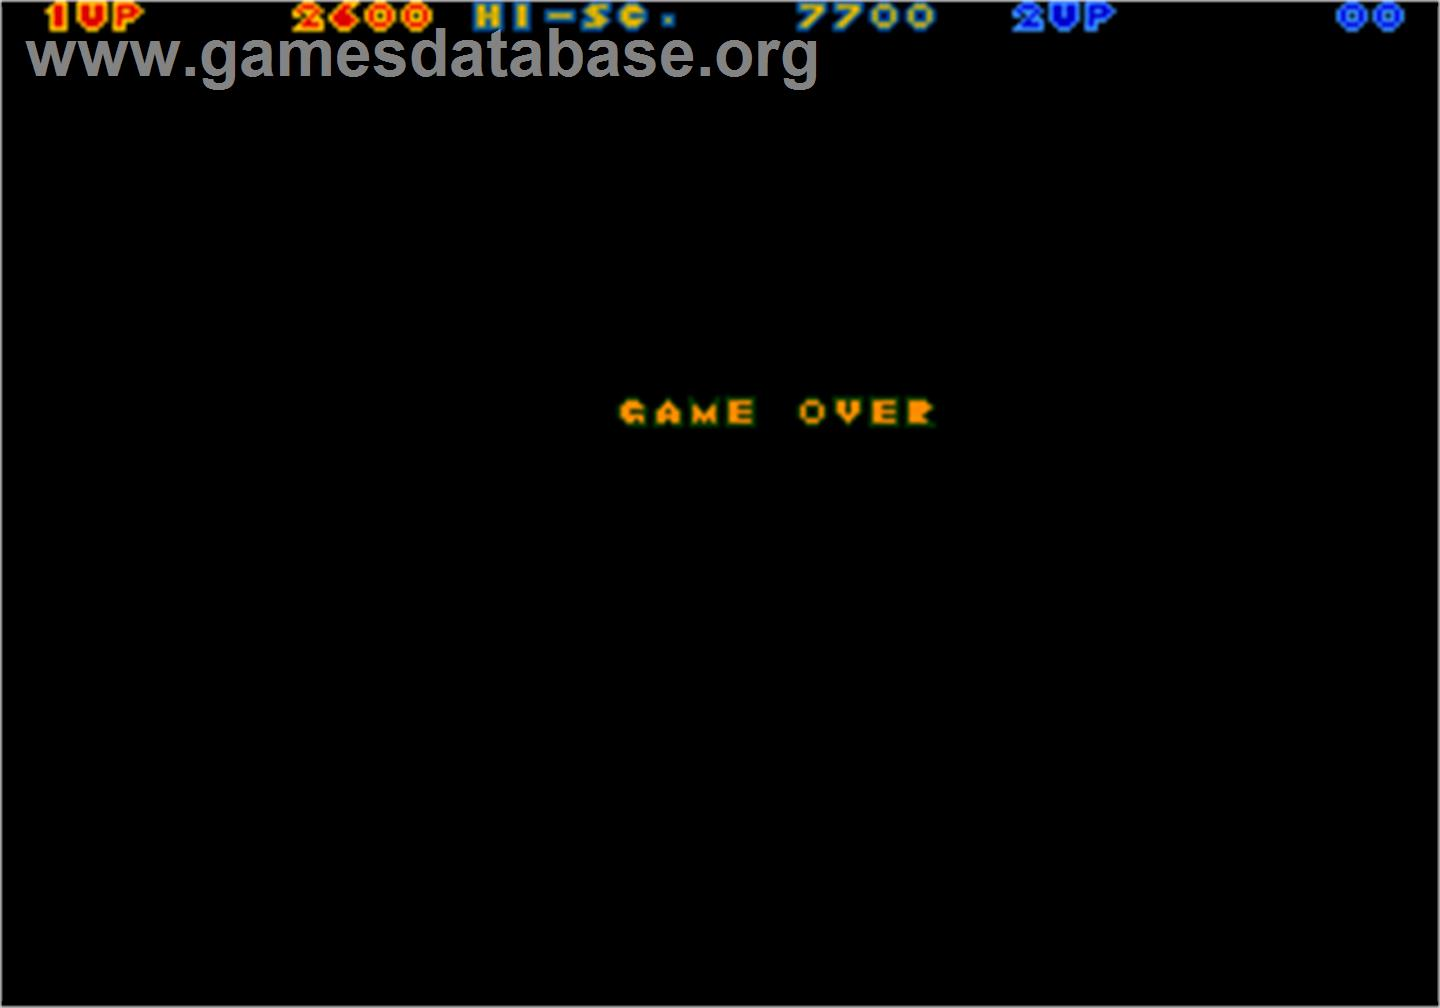 Game Over Screen for Rastan Saga 2.